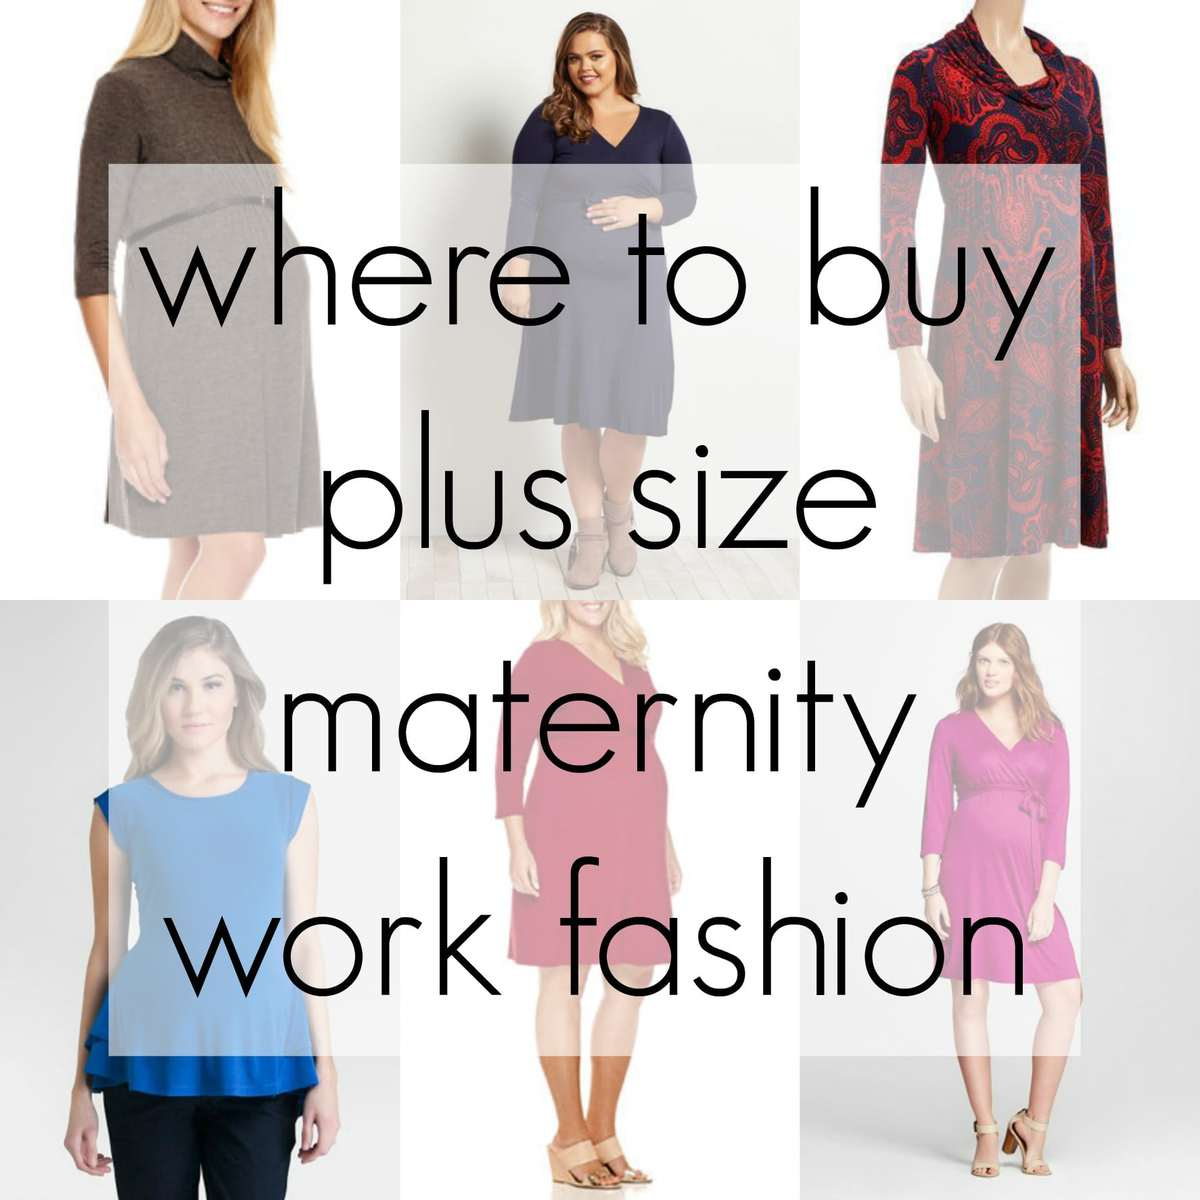 Where to Buy Plus Size Maternity Work Fashion - Wardrobe Oxygen| Plus Size Maternity Work Clothes featured by popular DC curvy fashion blogger, Wardrobe Oxygen